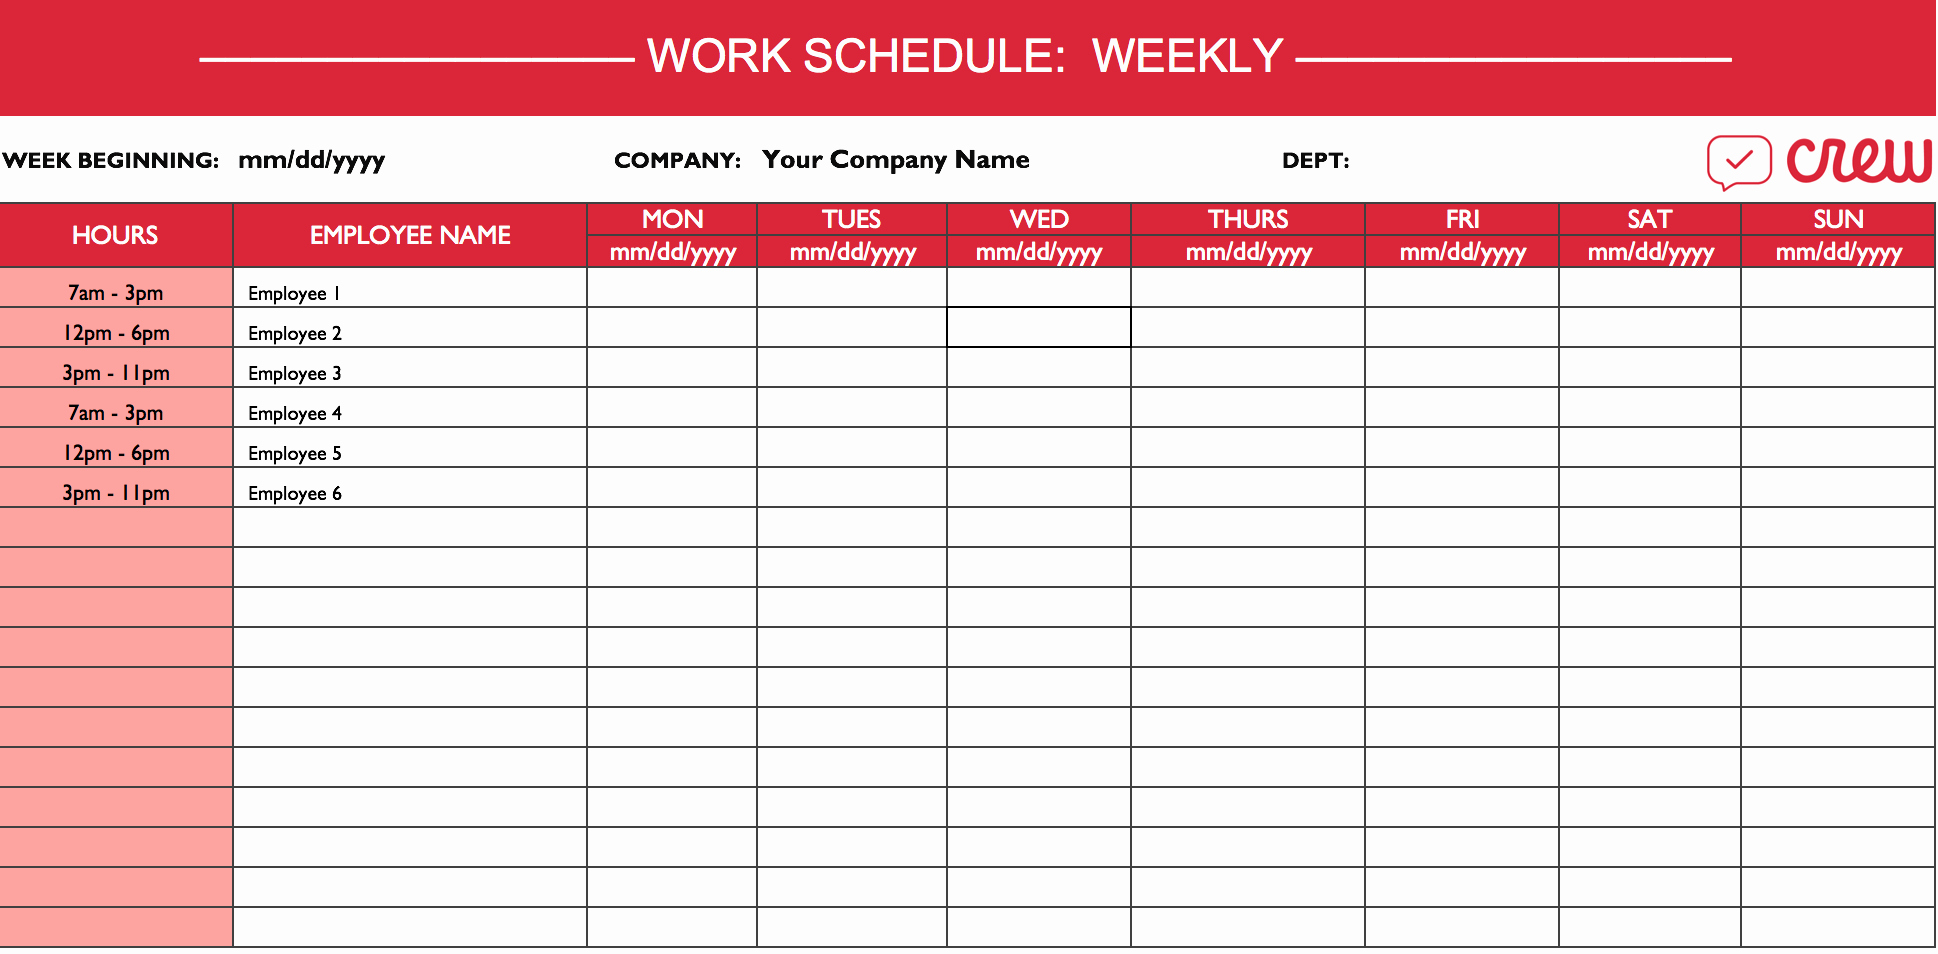 Excel Employee Schedule Template Unique Weekly Work Schedule Template I Crew